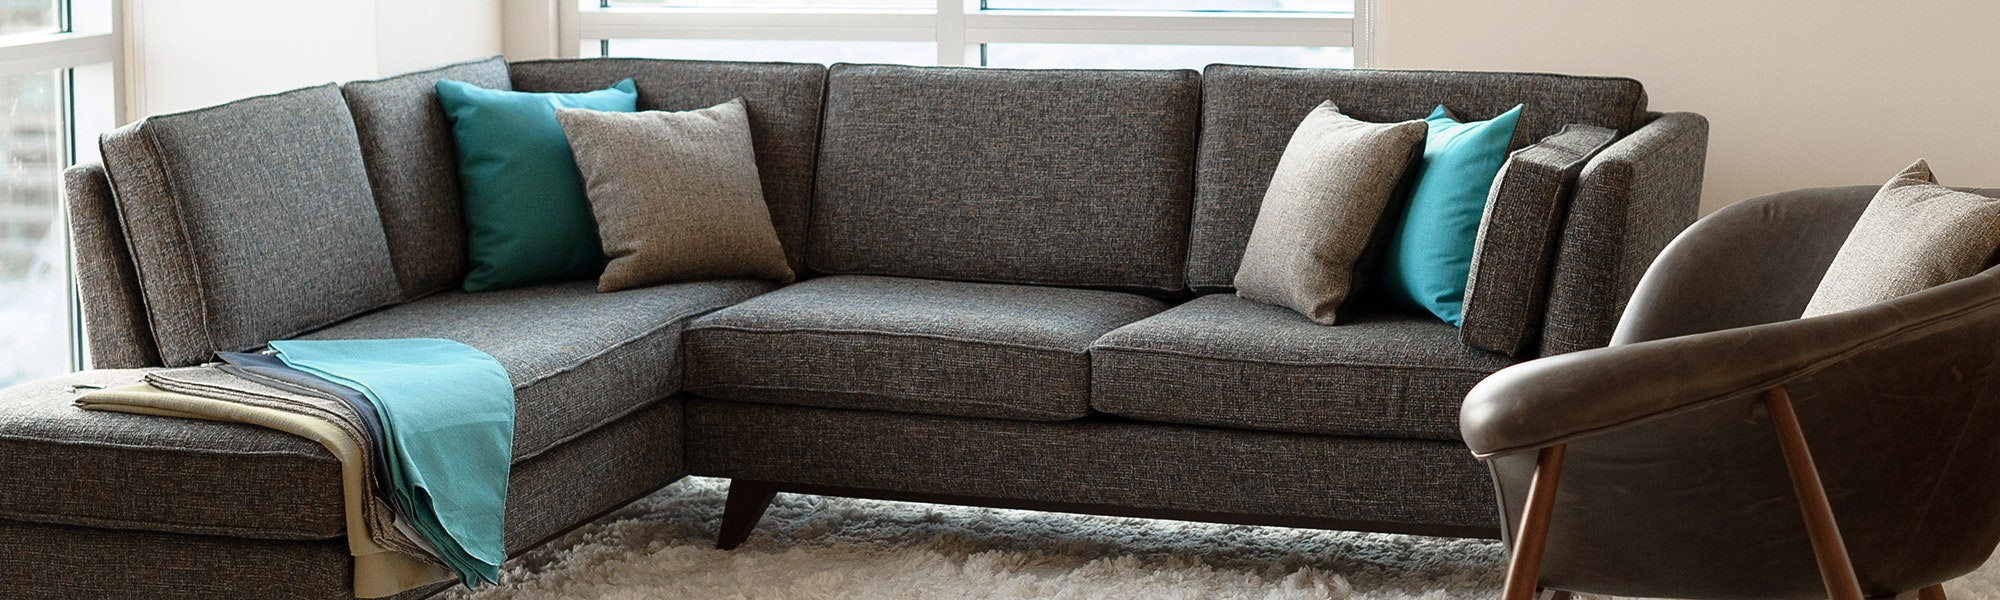 Professional Upholstery Cleaning Claremont